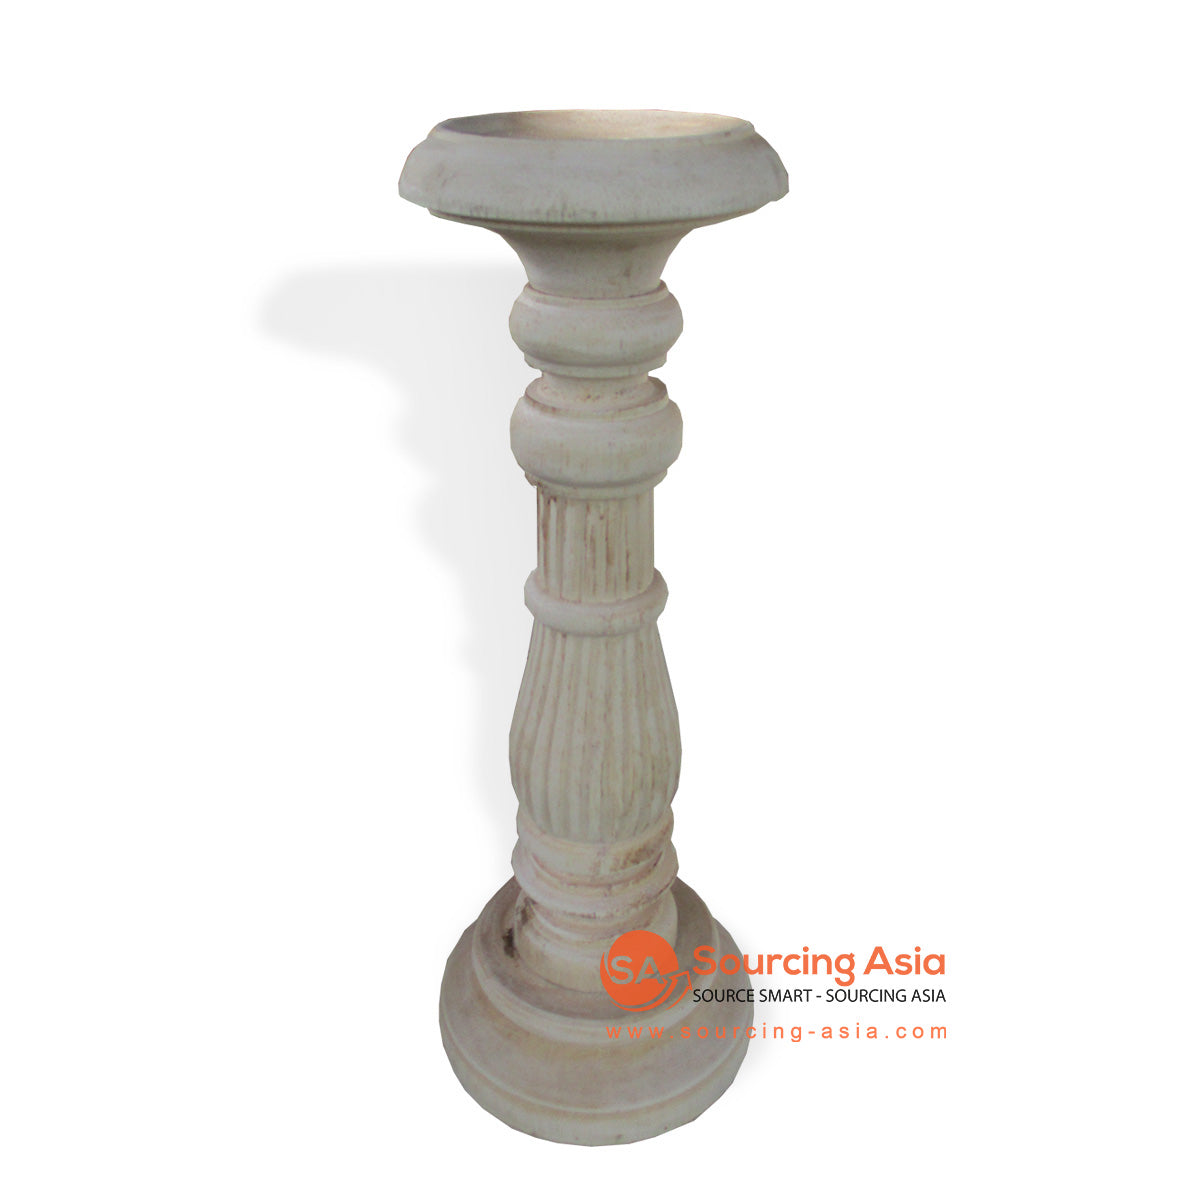 CHWD023-30 CANDLE HOLDER